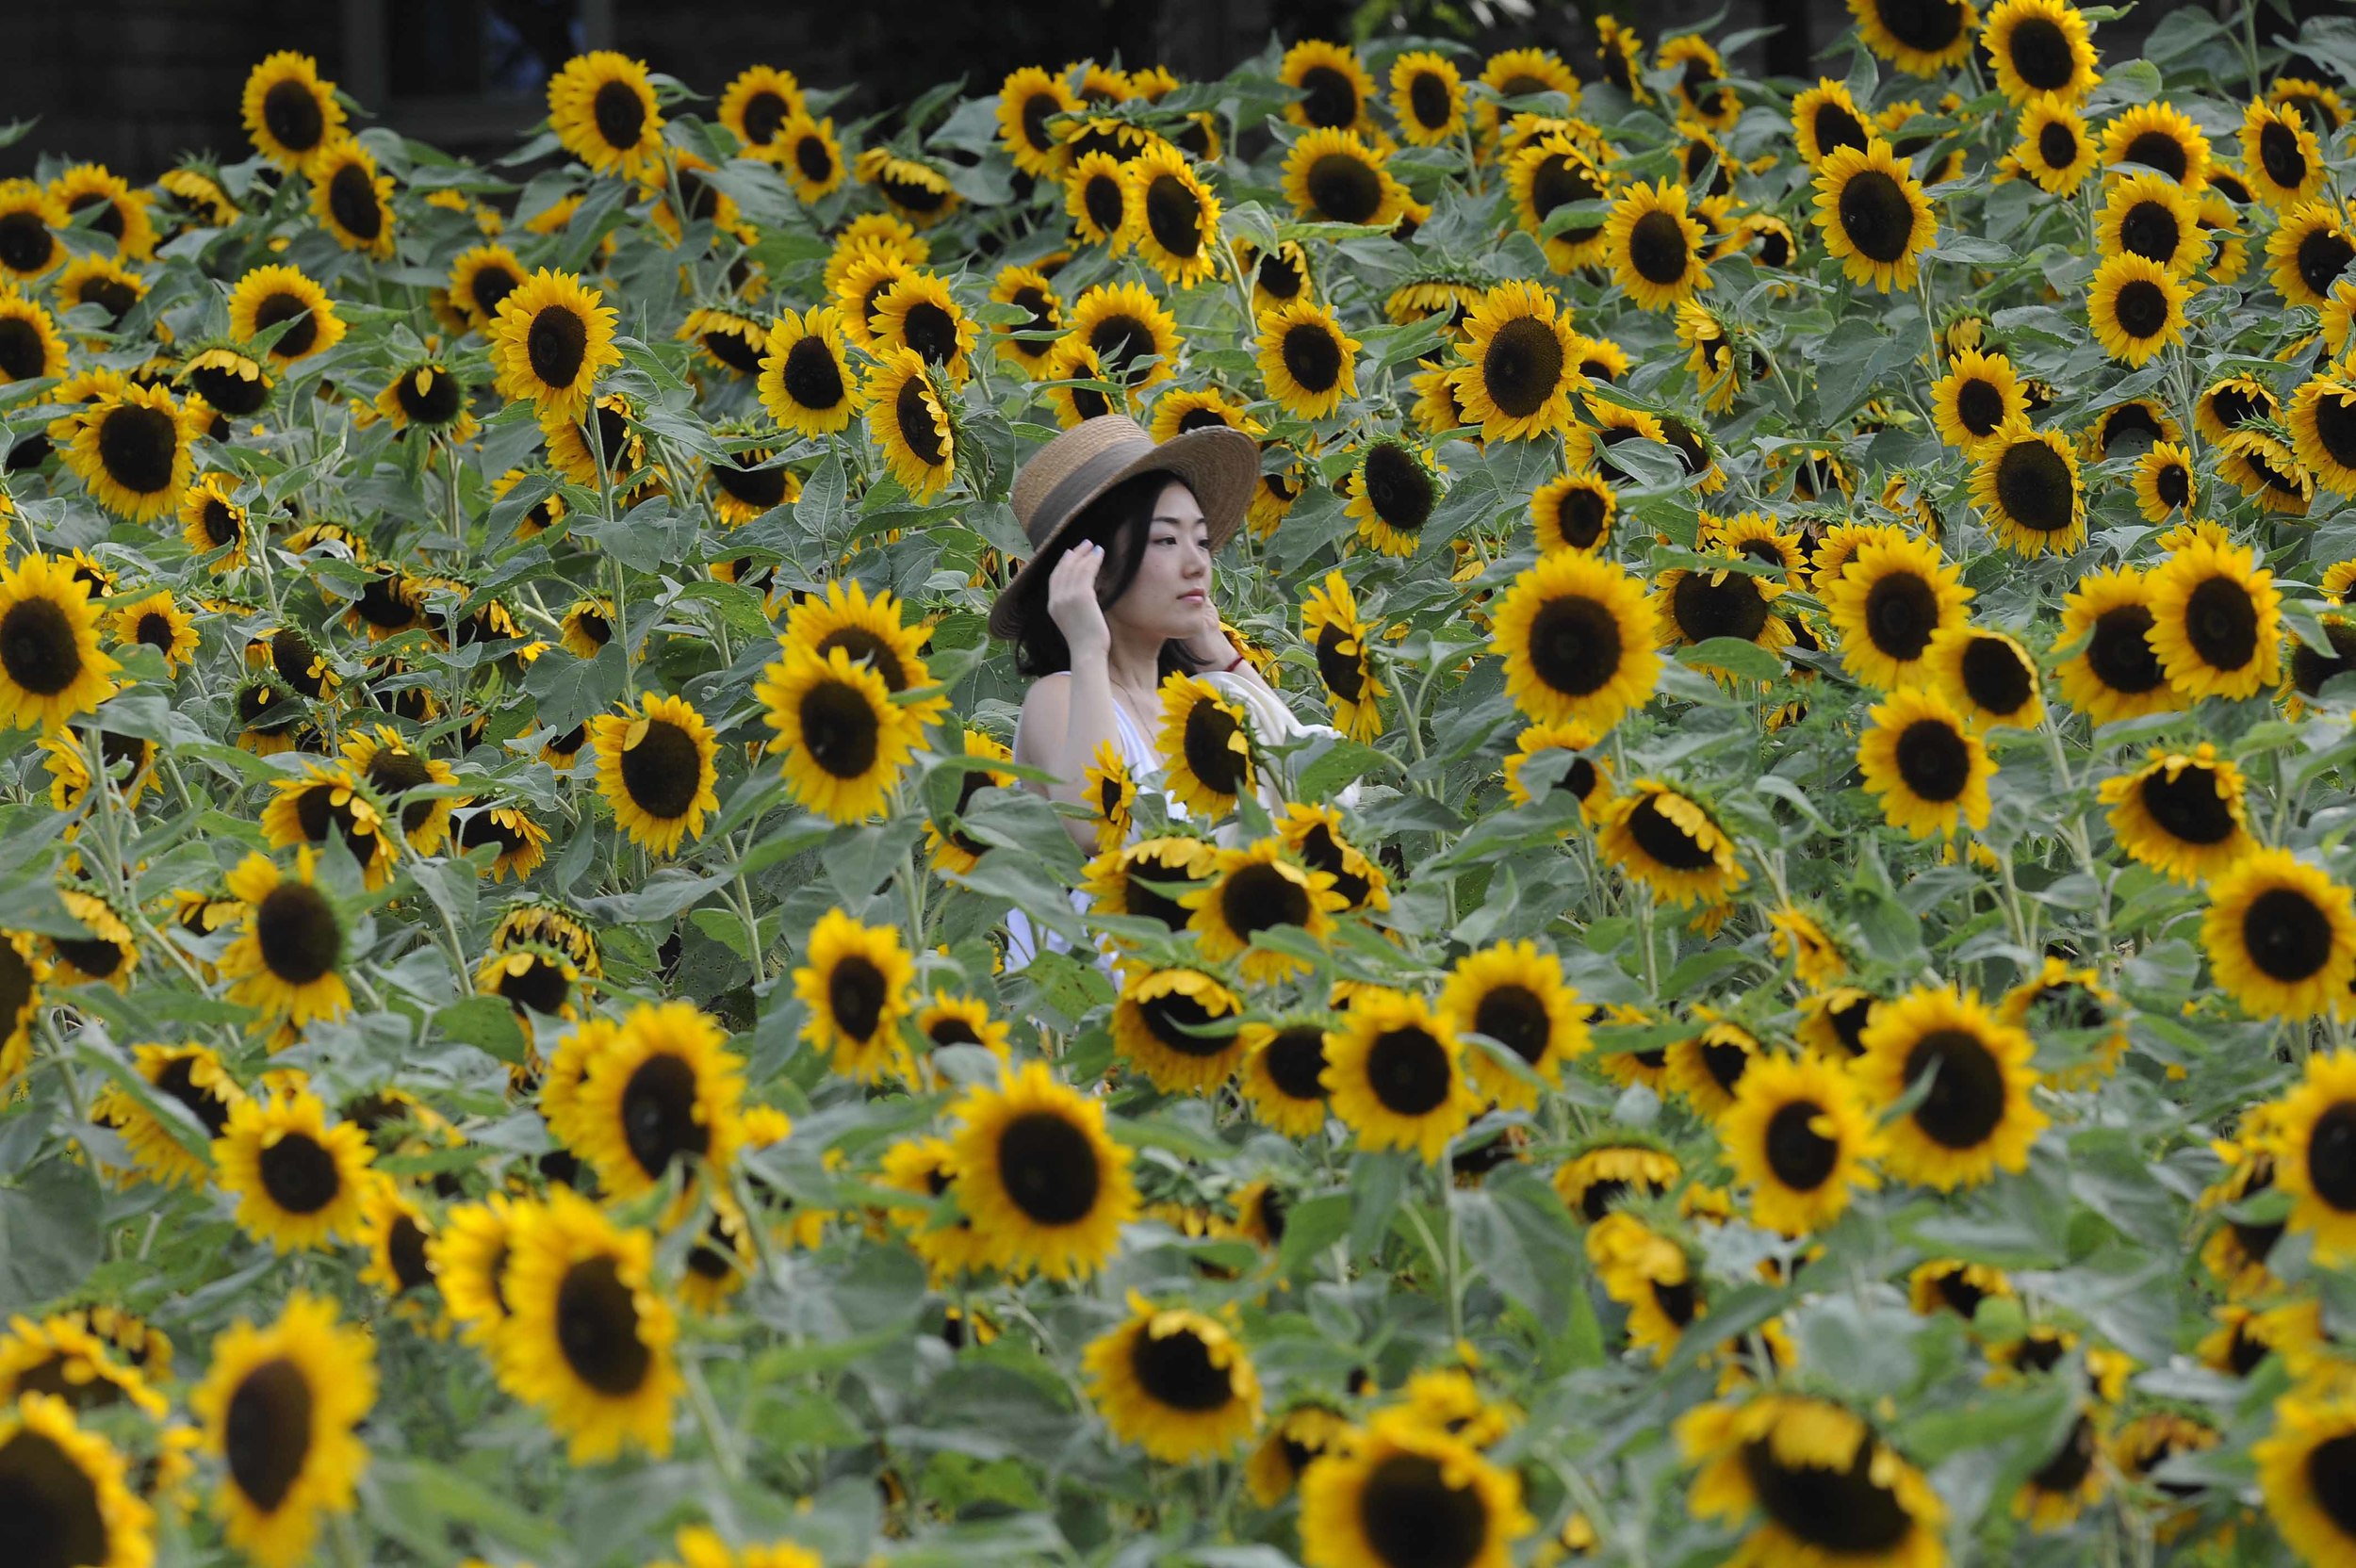 Mihoe among sun flowers in East Moriches, NY.